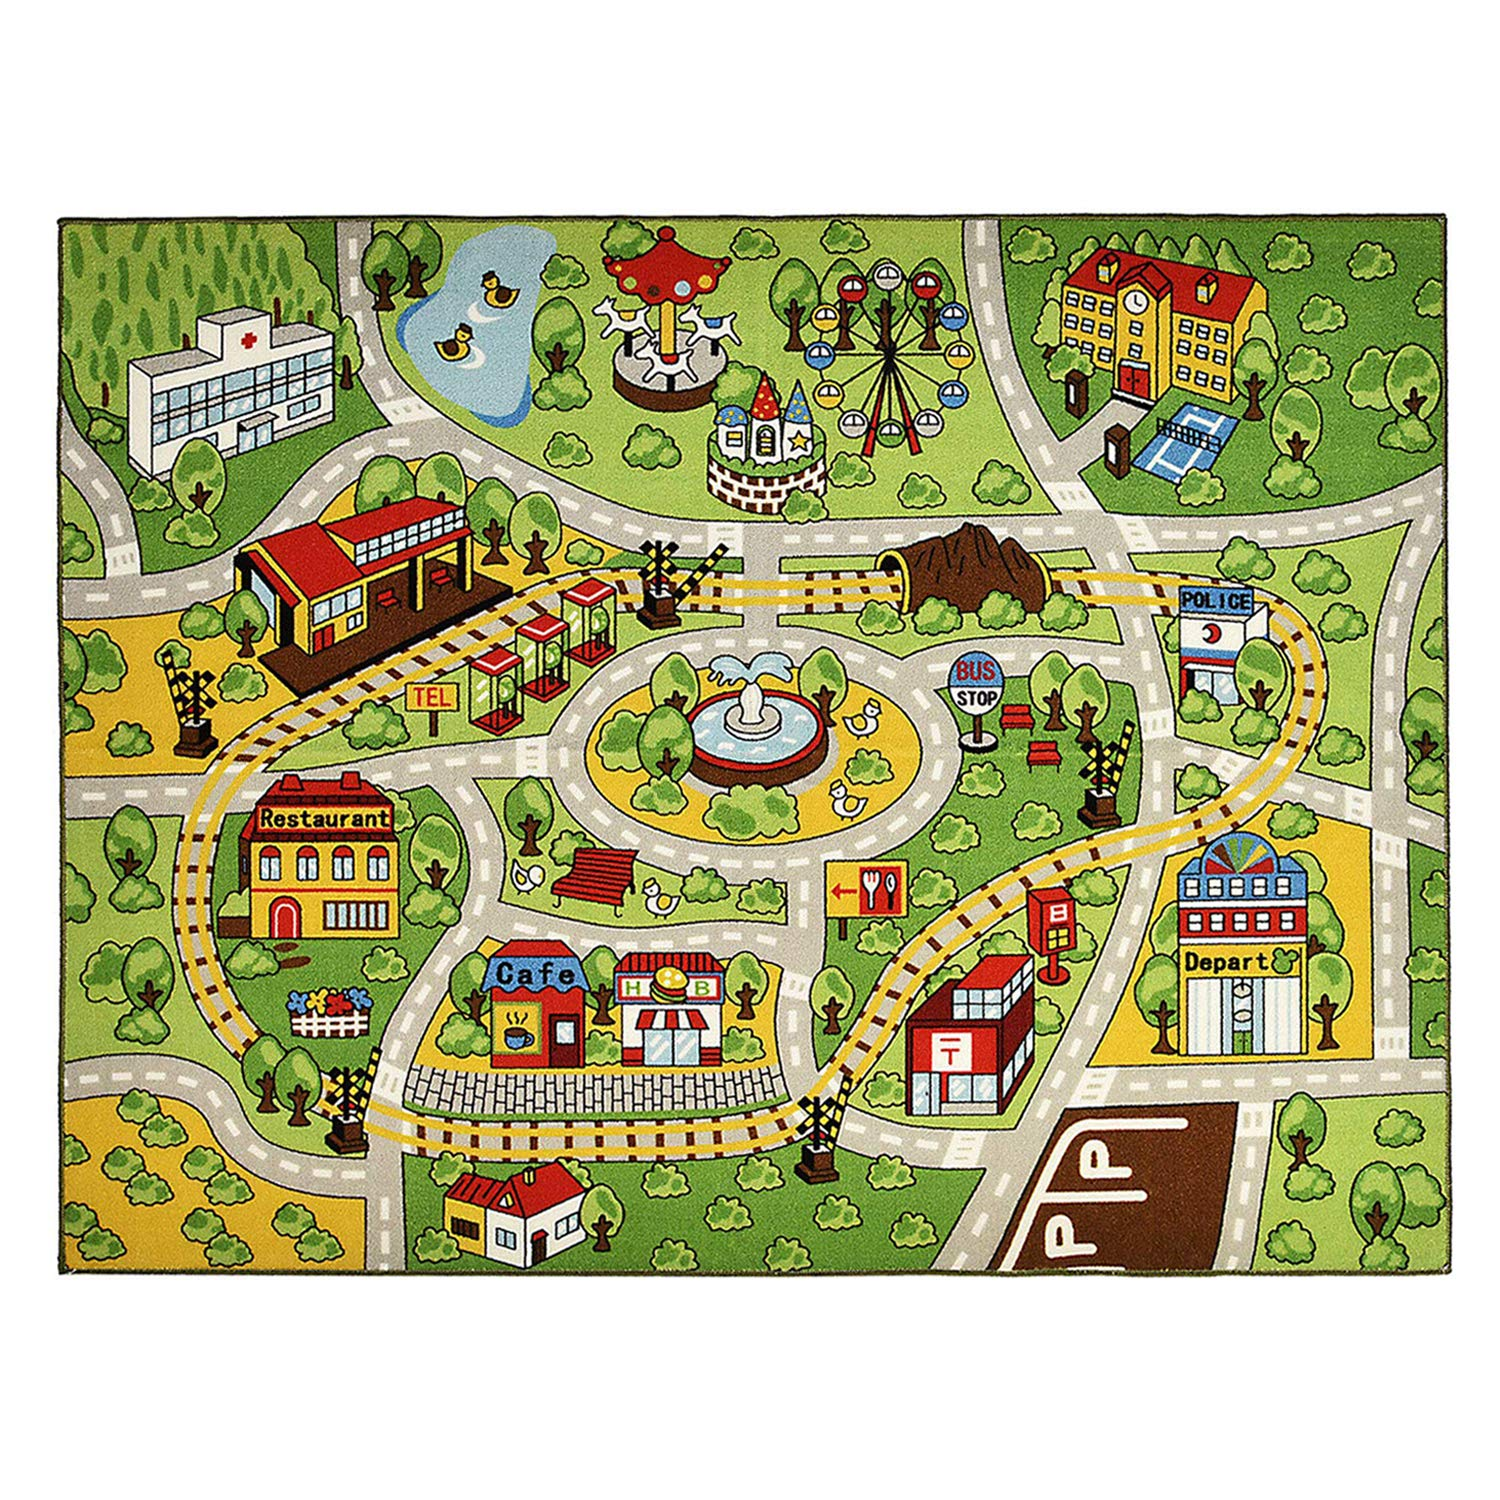 INCX Kids Carpet Playmat Rug for Toy Cars Large Car Rug Carpet with Non-Slip Backing Kids Educational Rug with Roads and Cars,Safe and Fun Play Rug for Bedroom Playroom(52'' x59'')